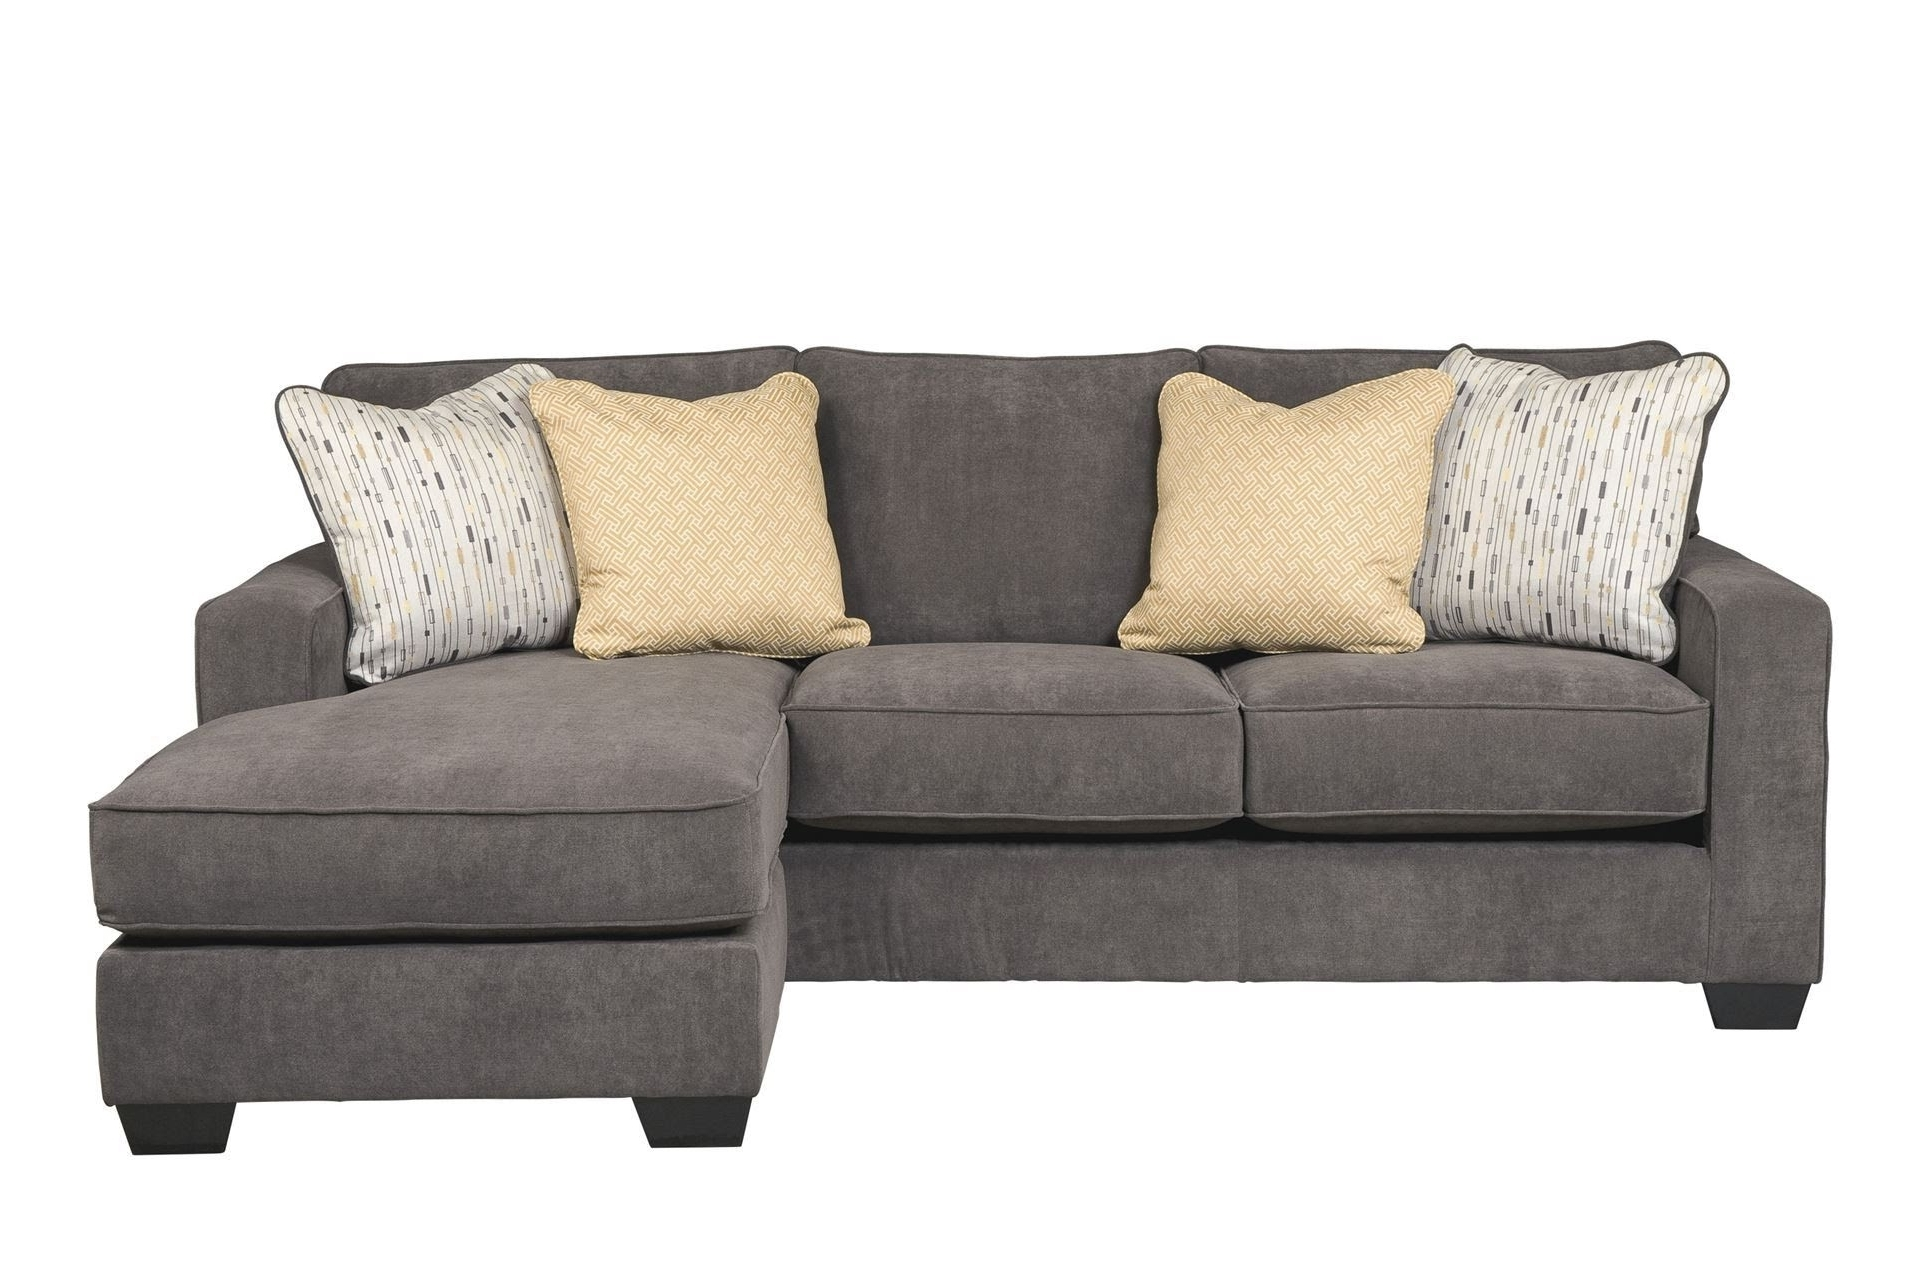 Interesting Couch With Chaise Lounge Ideas - Youtube throughout Current Couch Chaise Lounges